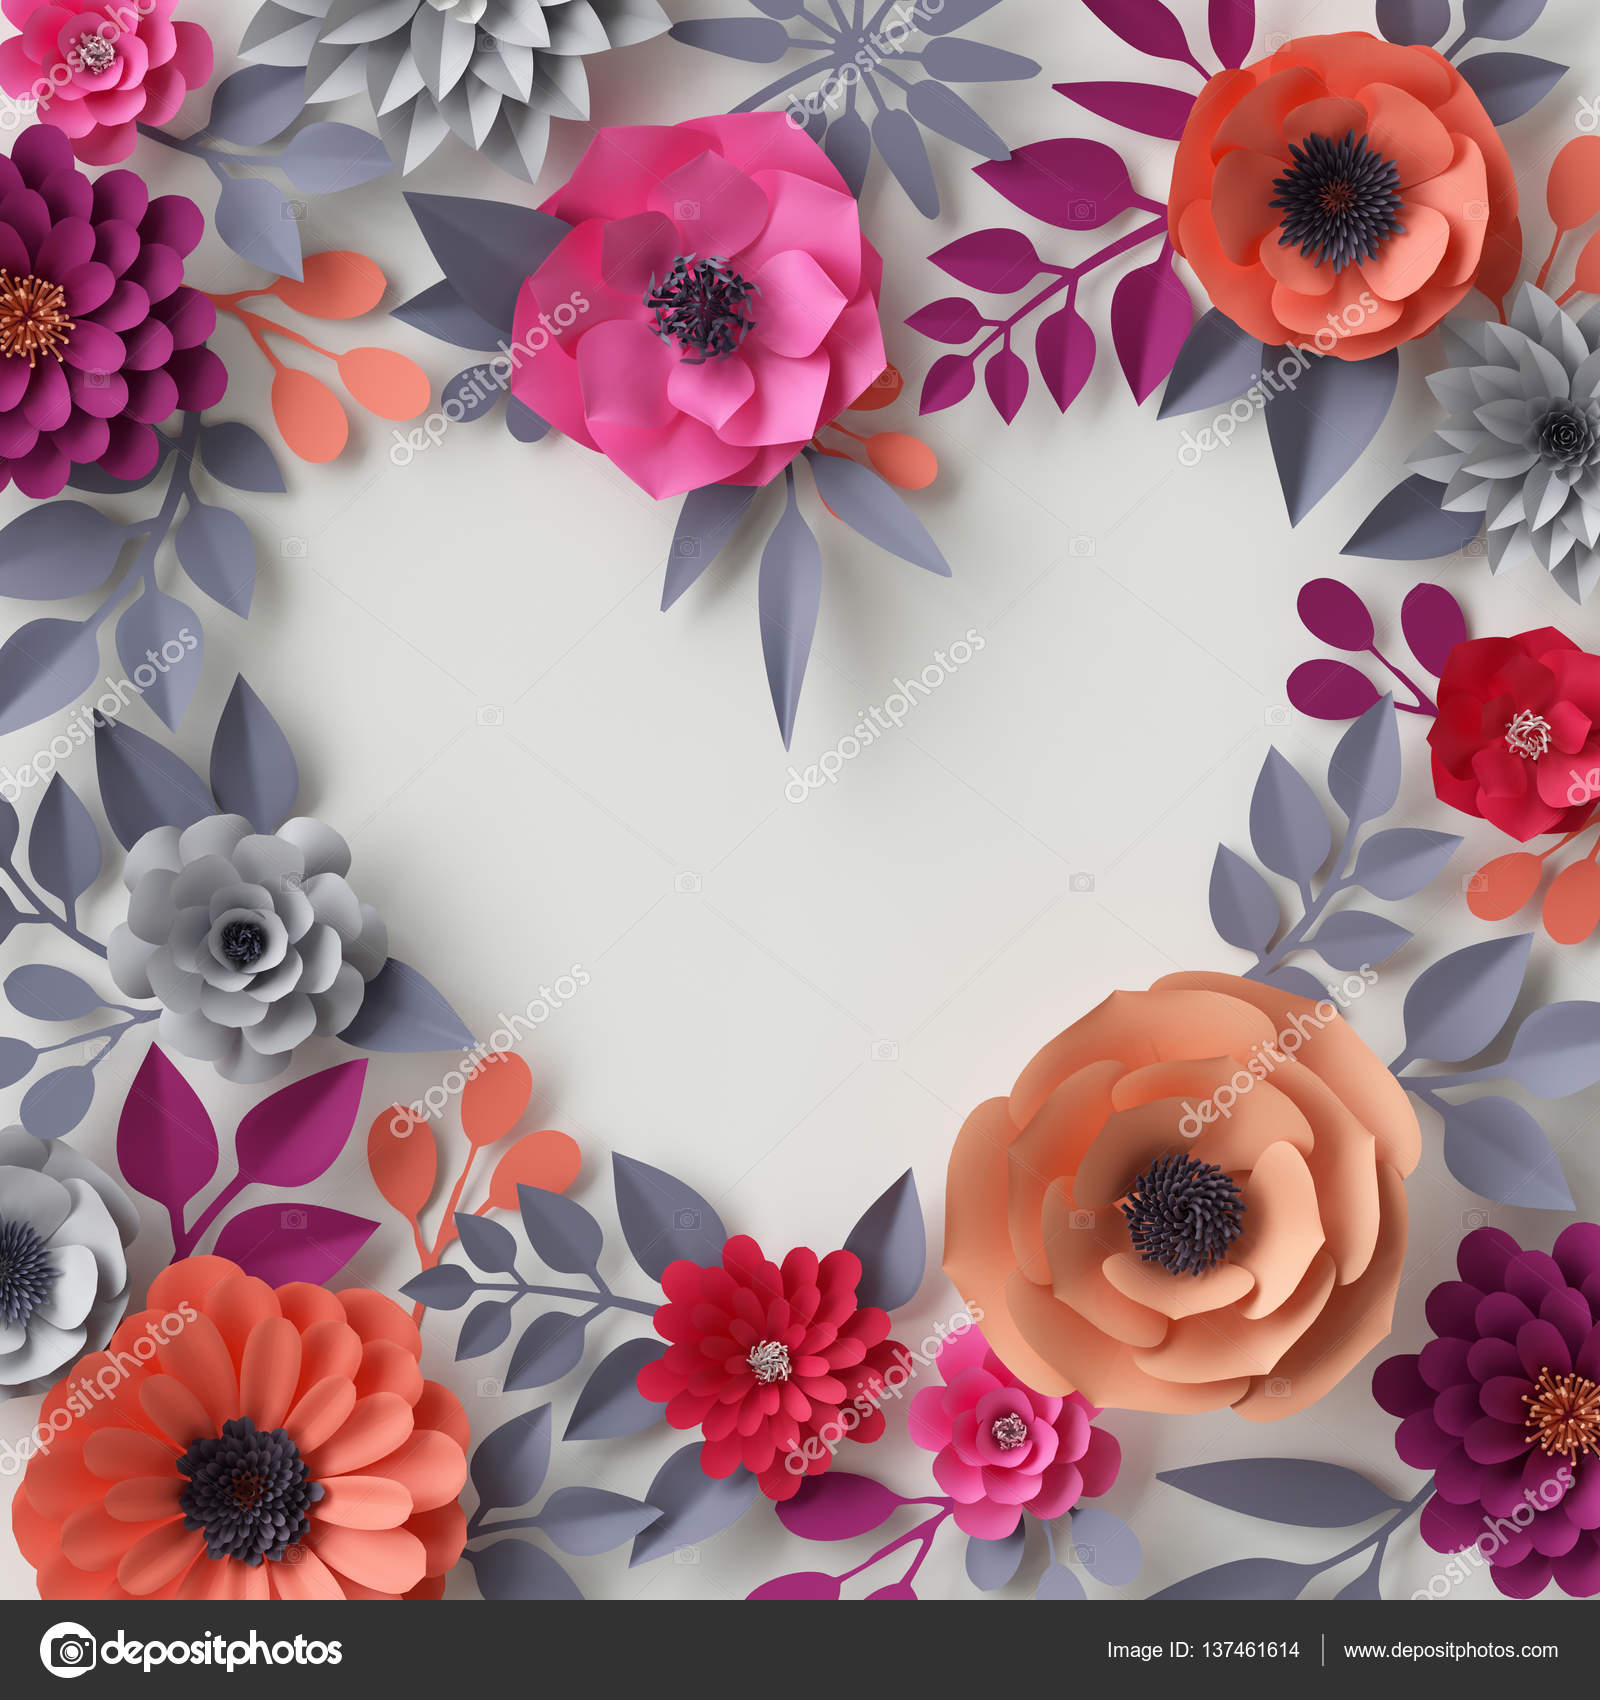 3d Render Digital Illustration Red Pink Orange Paper Flowers